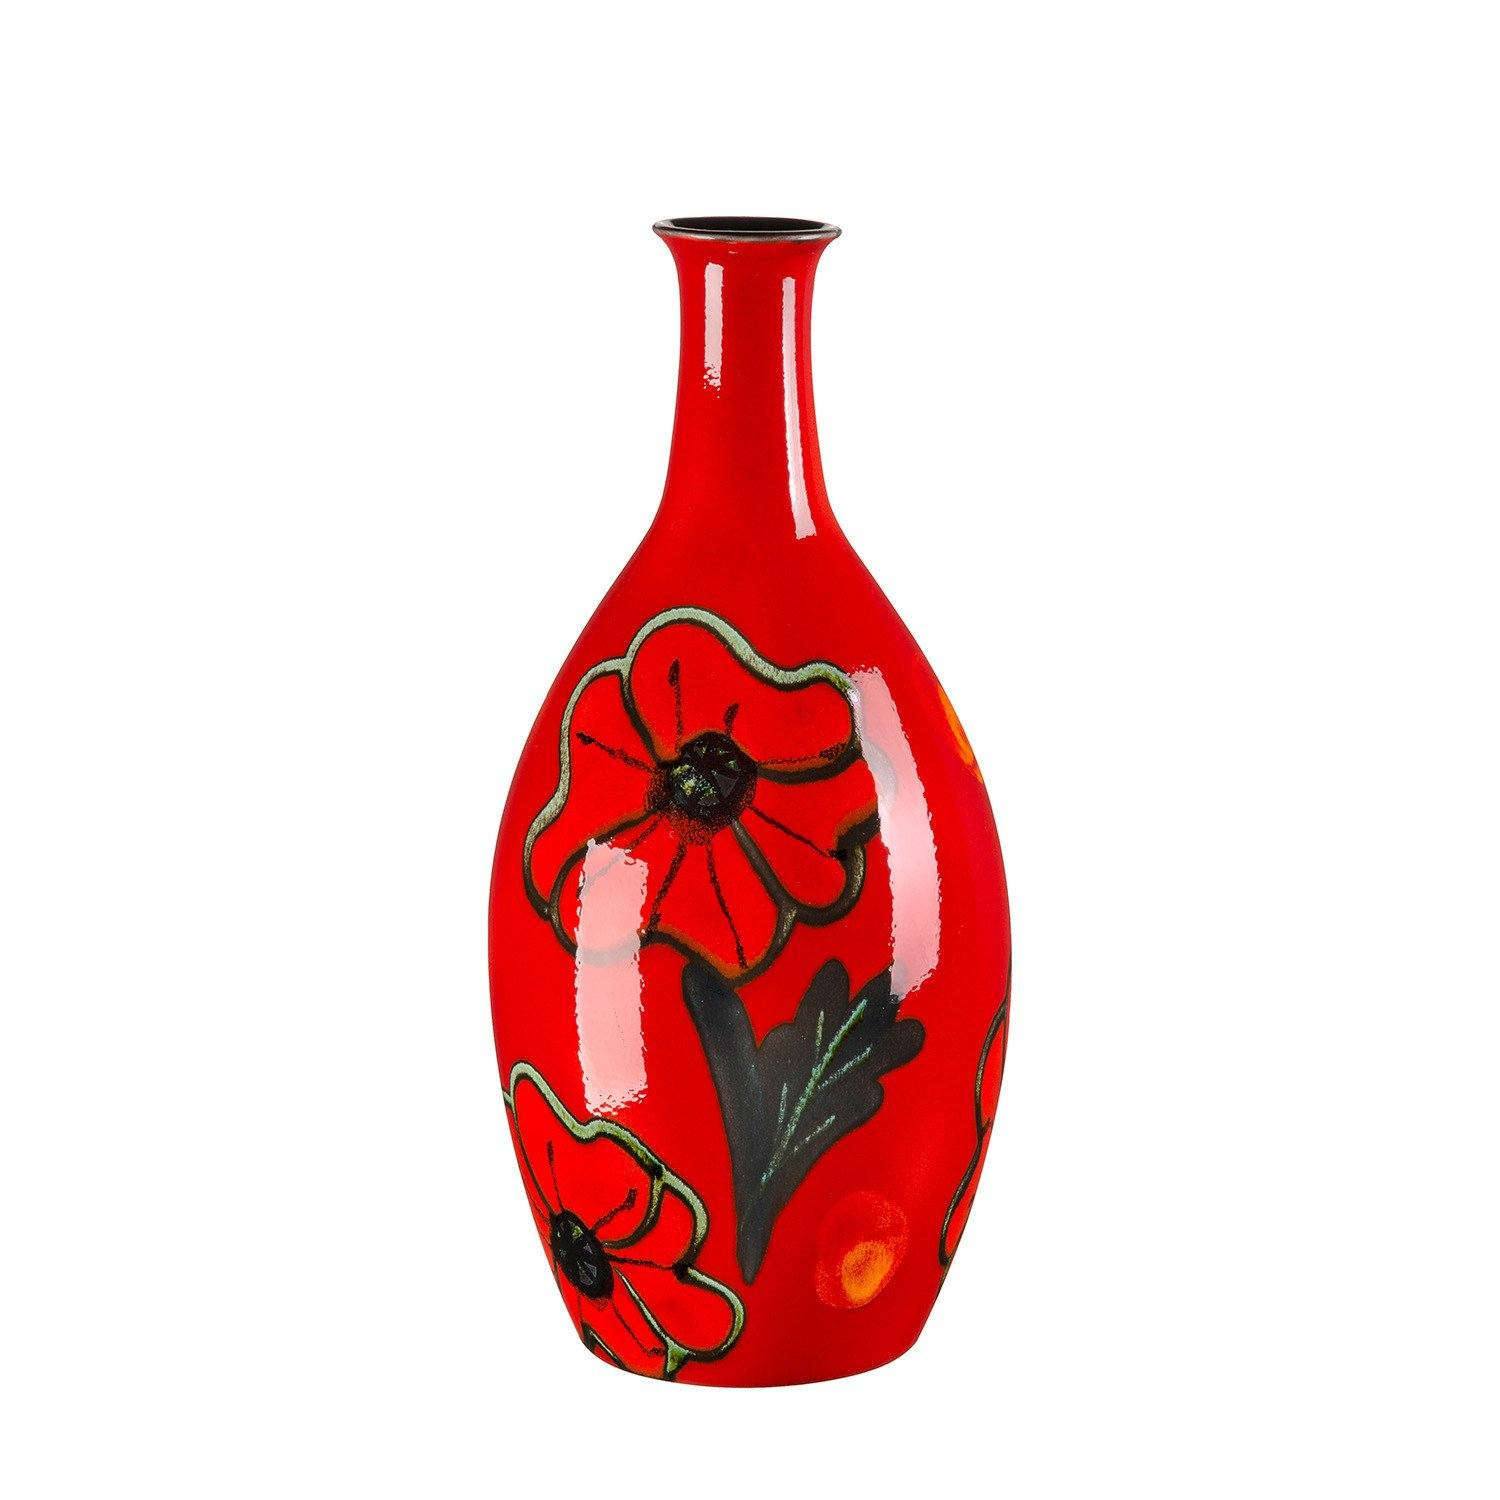 Poppyfield Tall Bottle Vase 26cm Poole Pottery